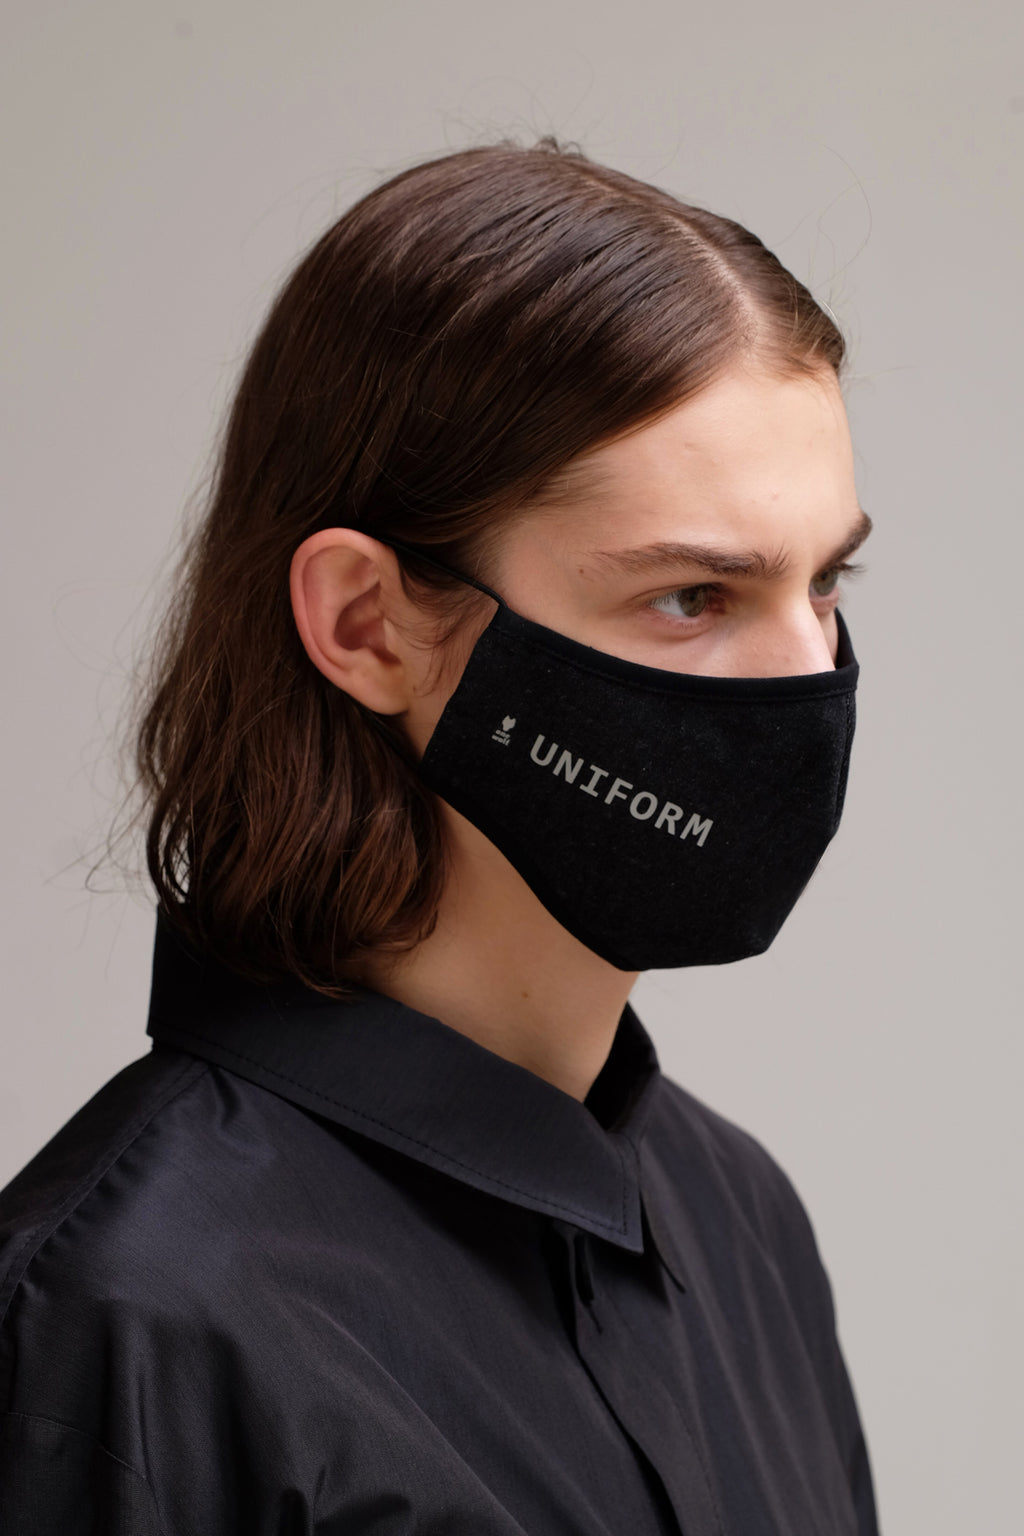 UNIFORM denim facewear mask